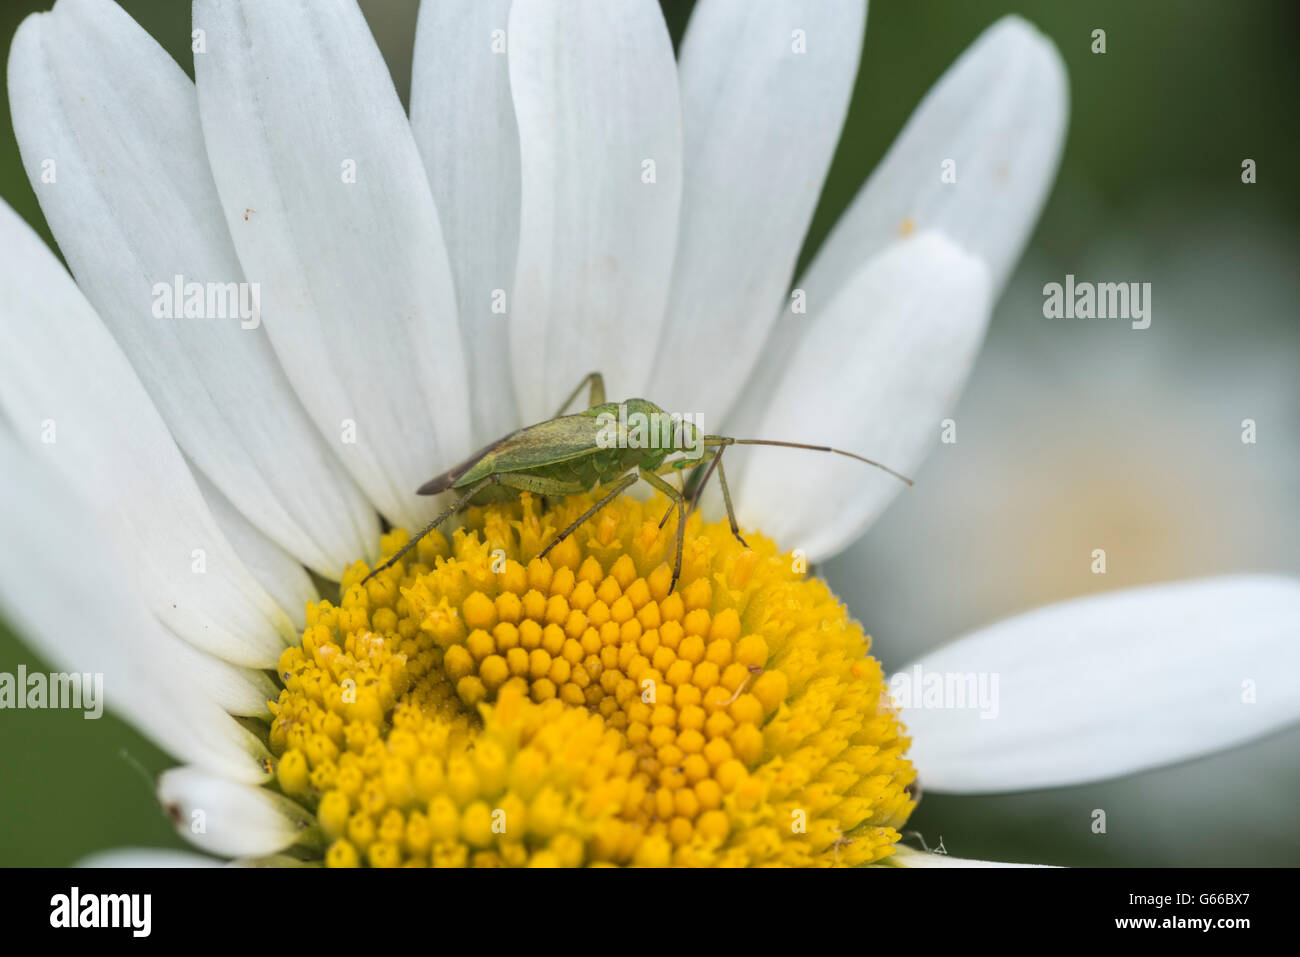 A Common Green Capsid bug on an ox-eyed daisy flower - Stock Image